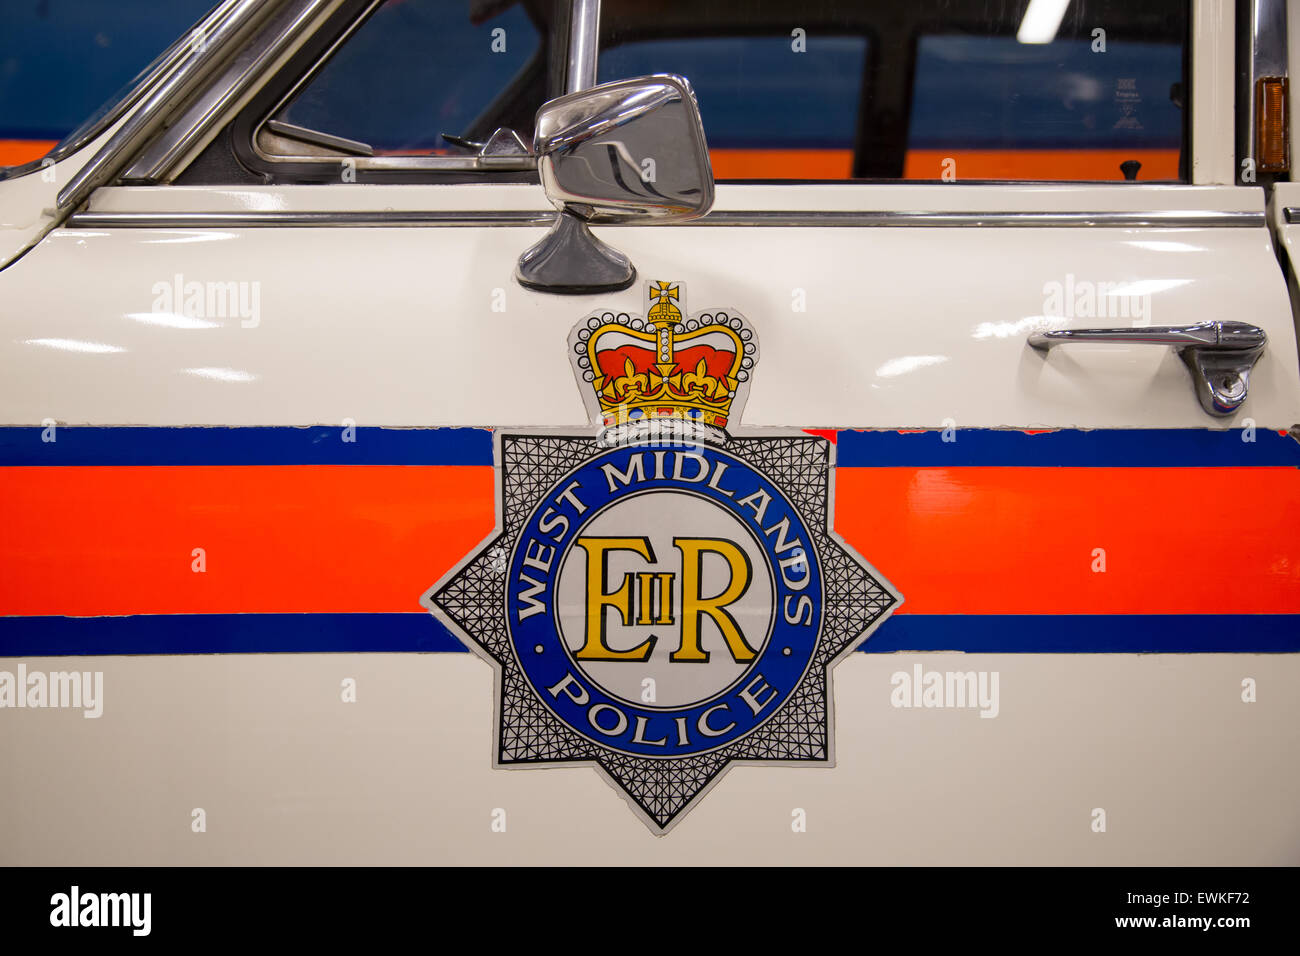 https www alamy com stock photo vintage police car transport museum coventry uk 84636918 html